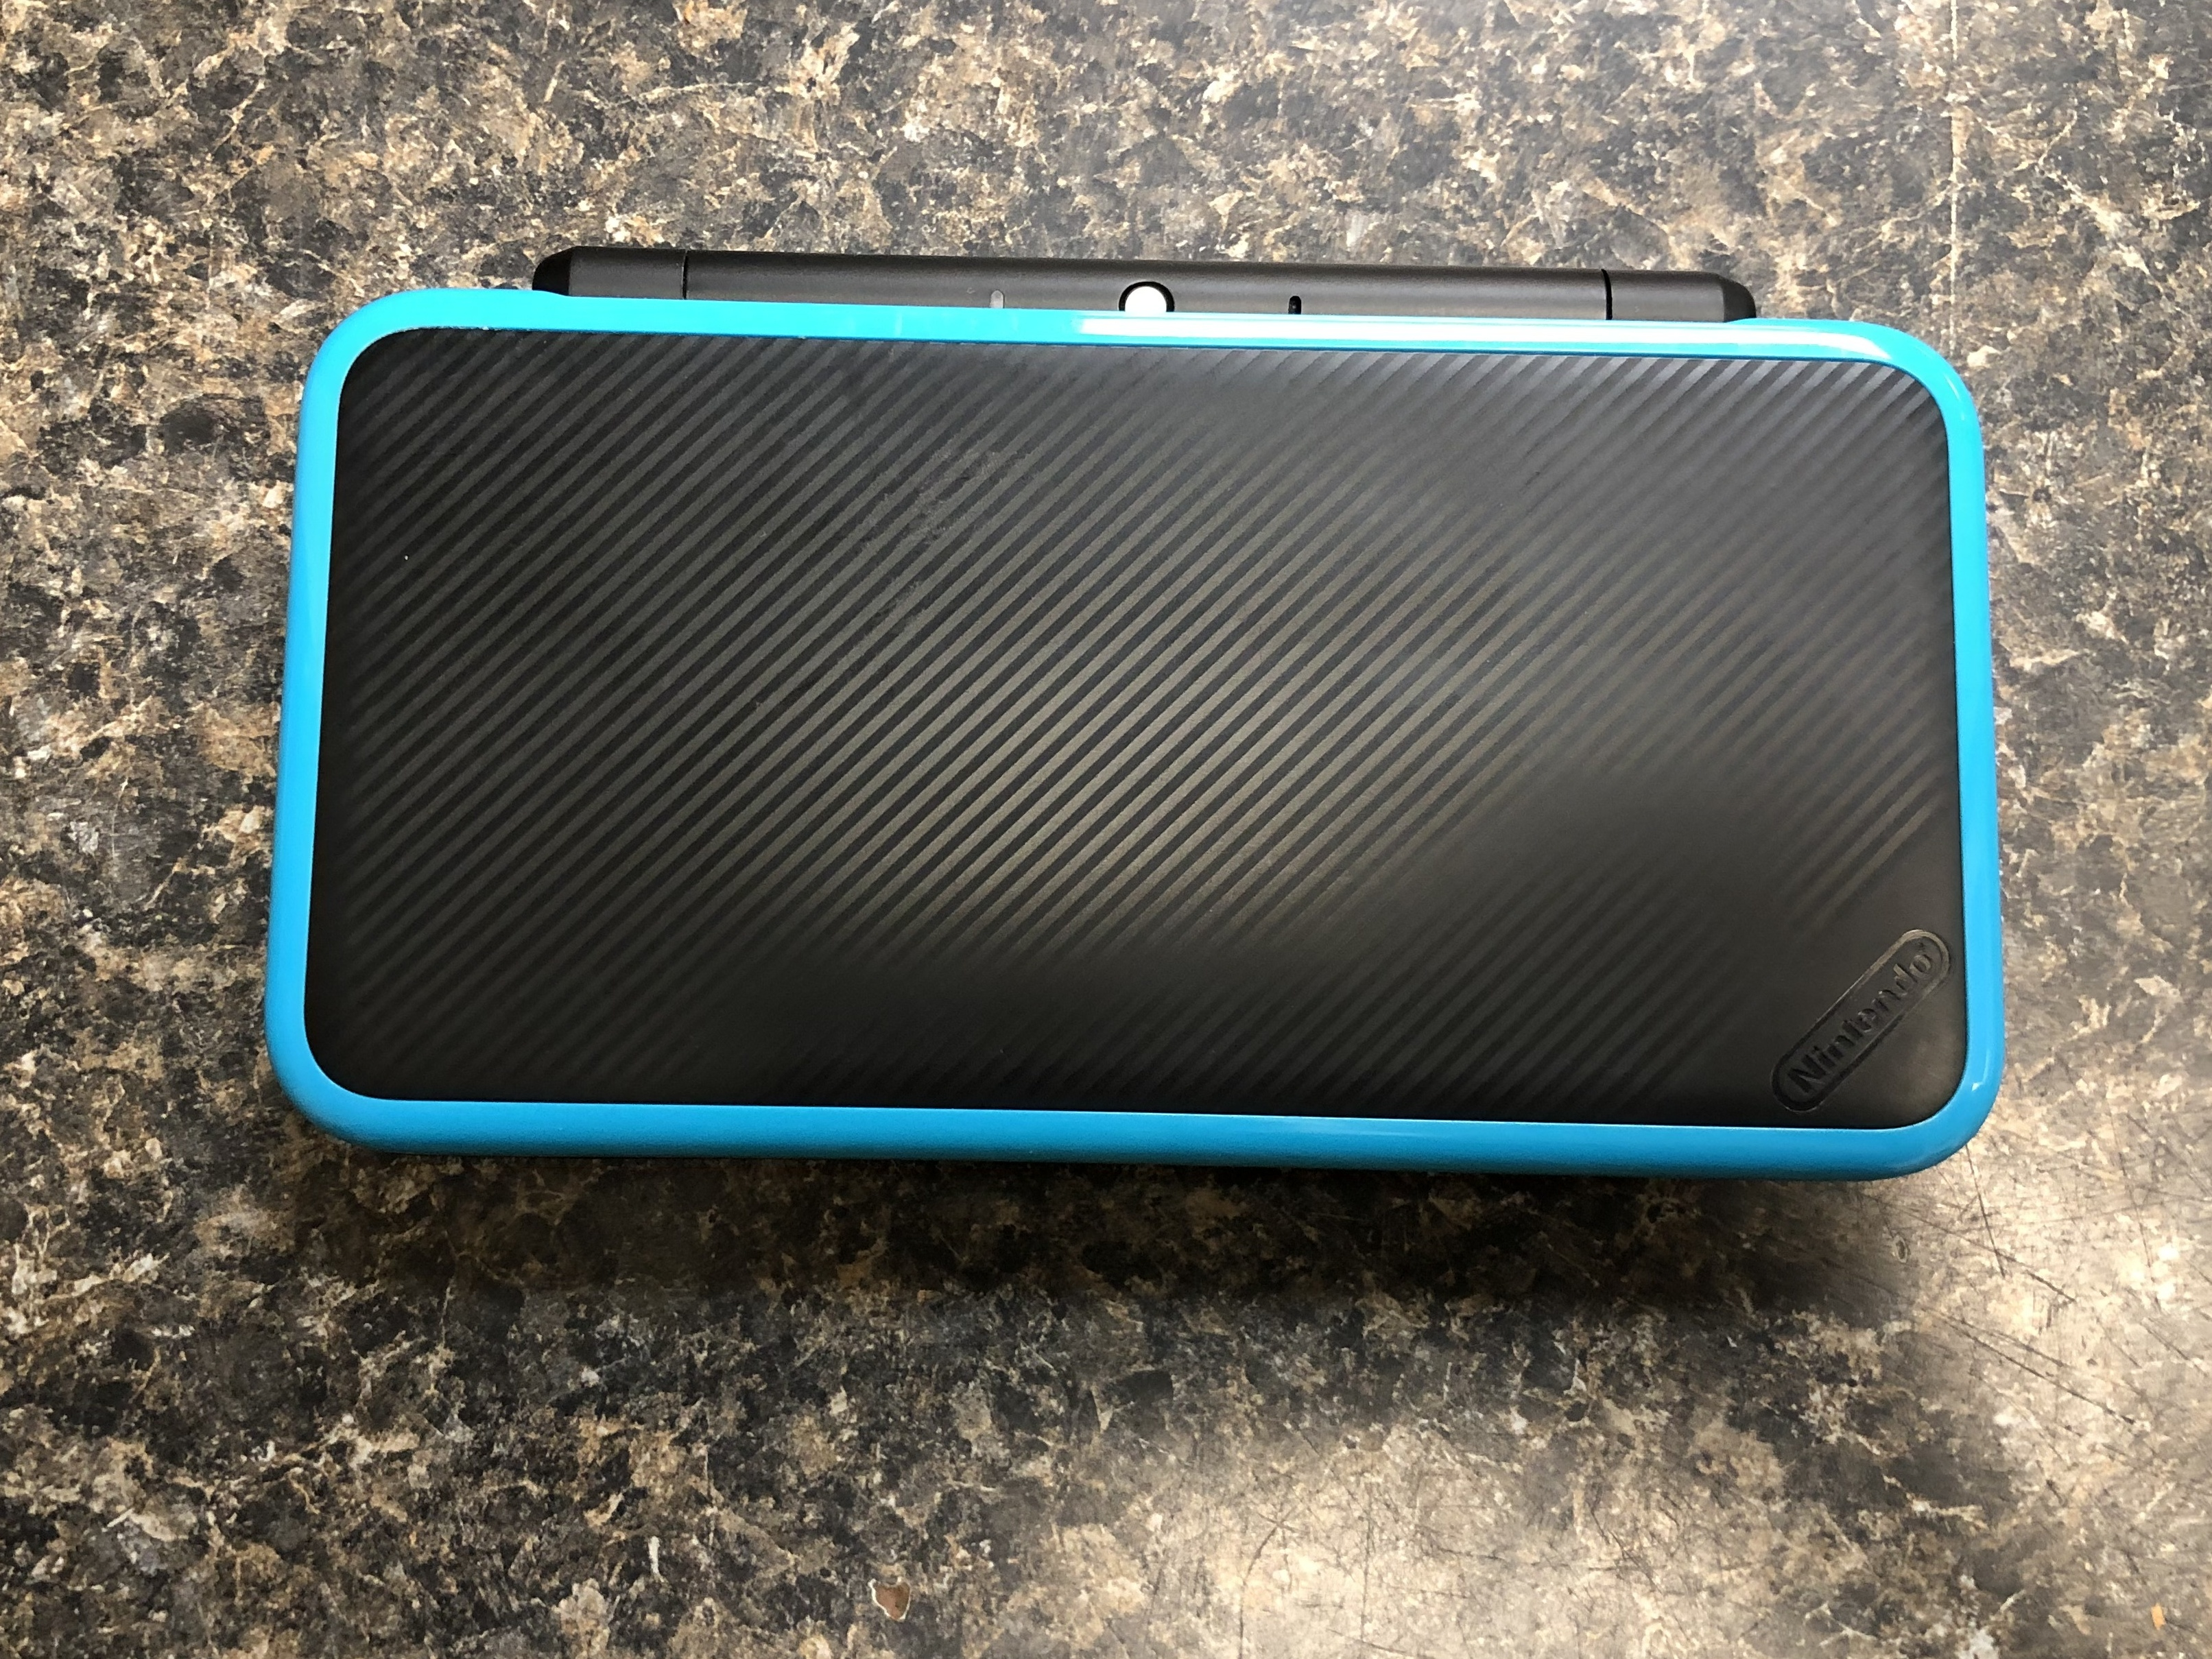 BLACK AND BLUE NINTENDO 2DS XL - JAN-001